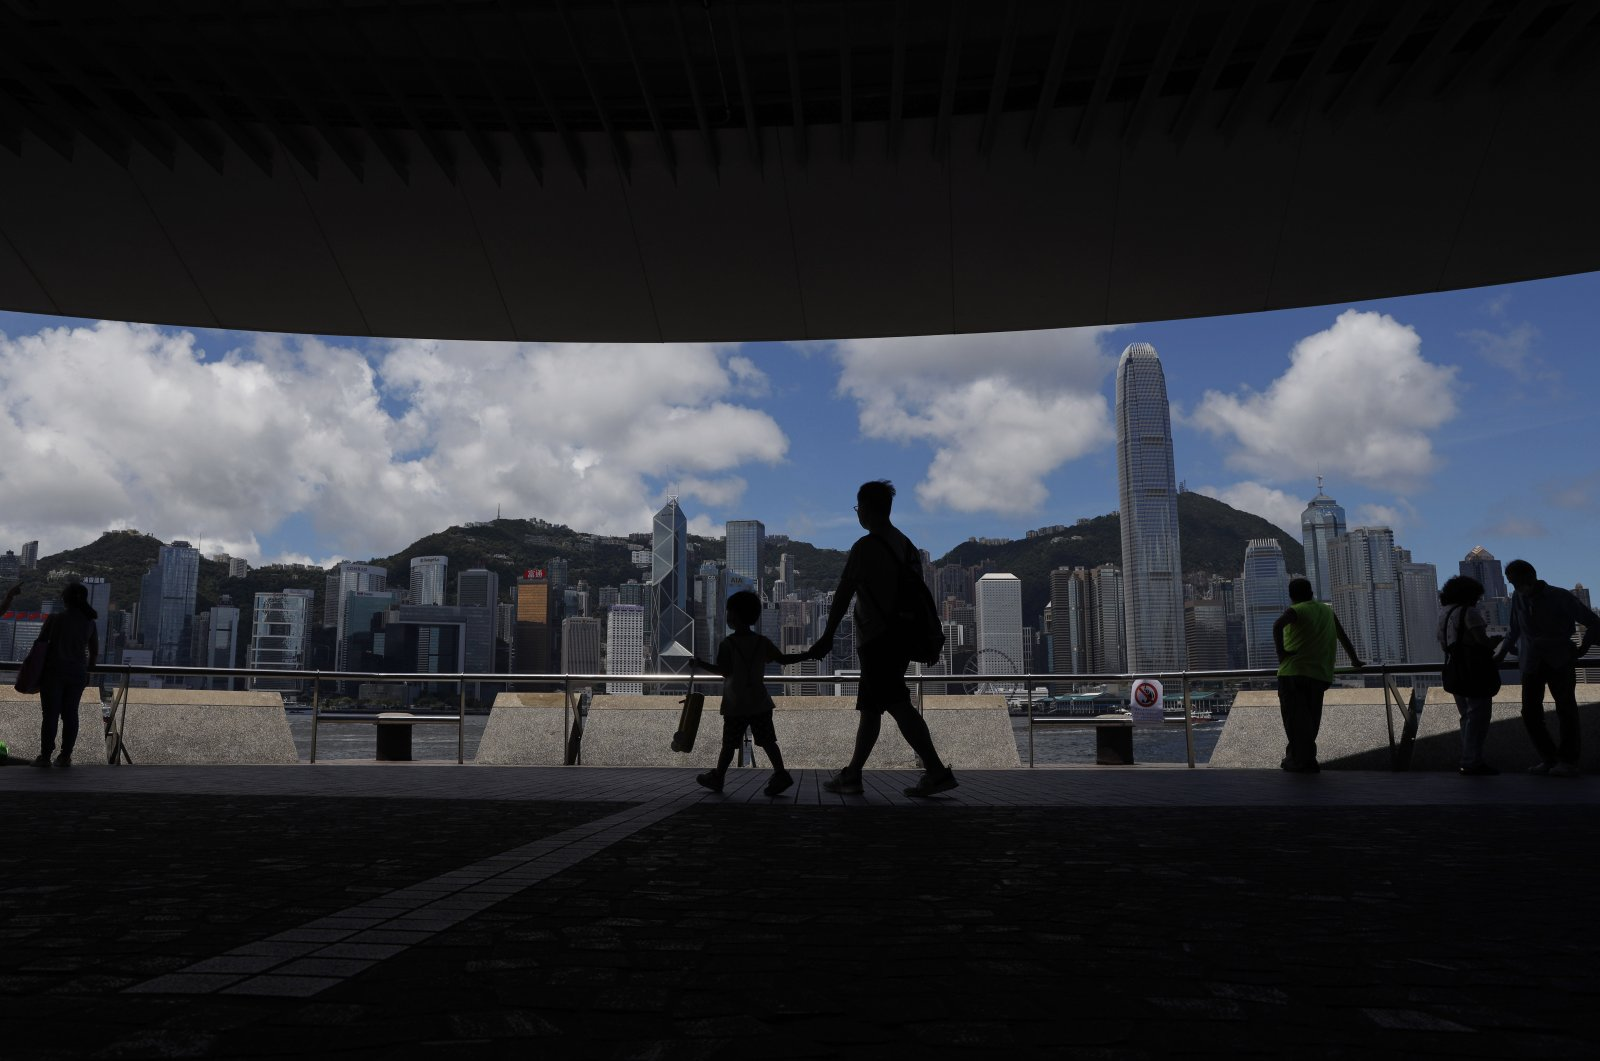 People walk at the waterfront of the Victoria Harbor of Hong Kong, June 20, 2020. China's top legislative body has taken up a draft national security law for Hong Kong that has been strongly criticized as undermining the semi-autonomous territory's legal and political institutions. (AP Photo)